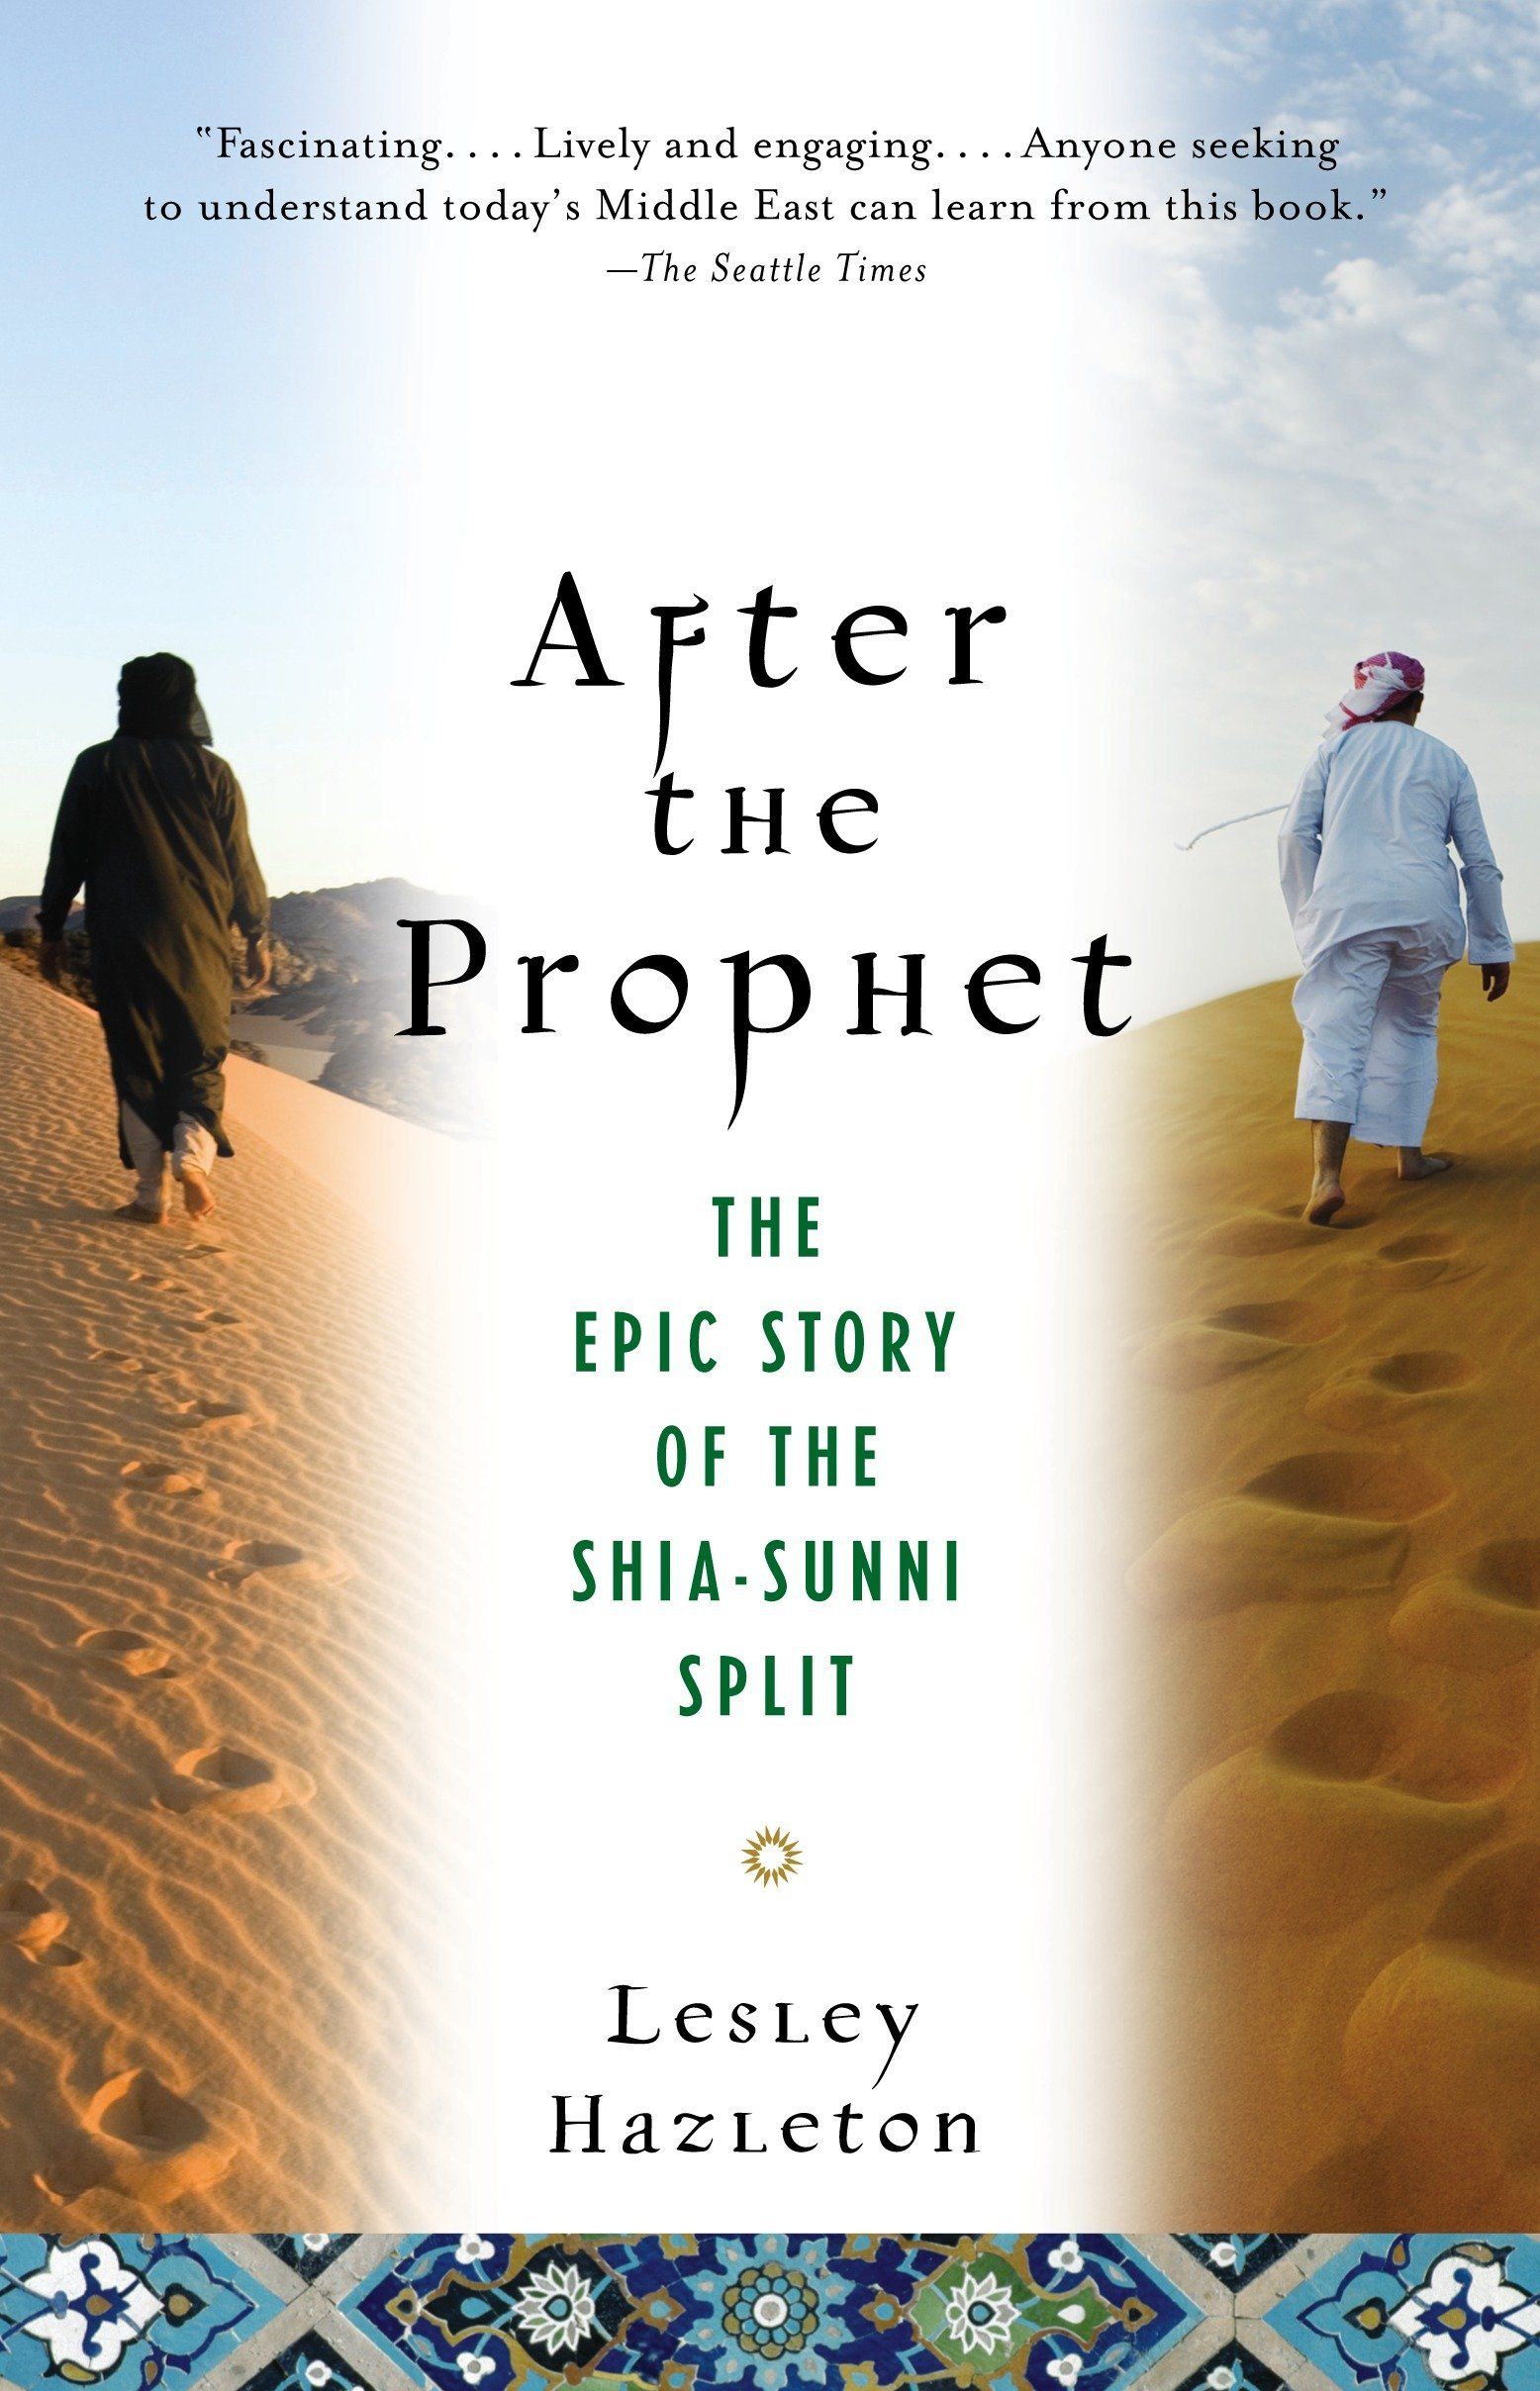 Noura Al Kaabi, the Minister of Culture and Knowledge Development, recommended After the Prophet by Lesley Hazleton